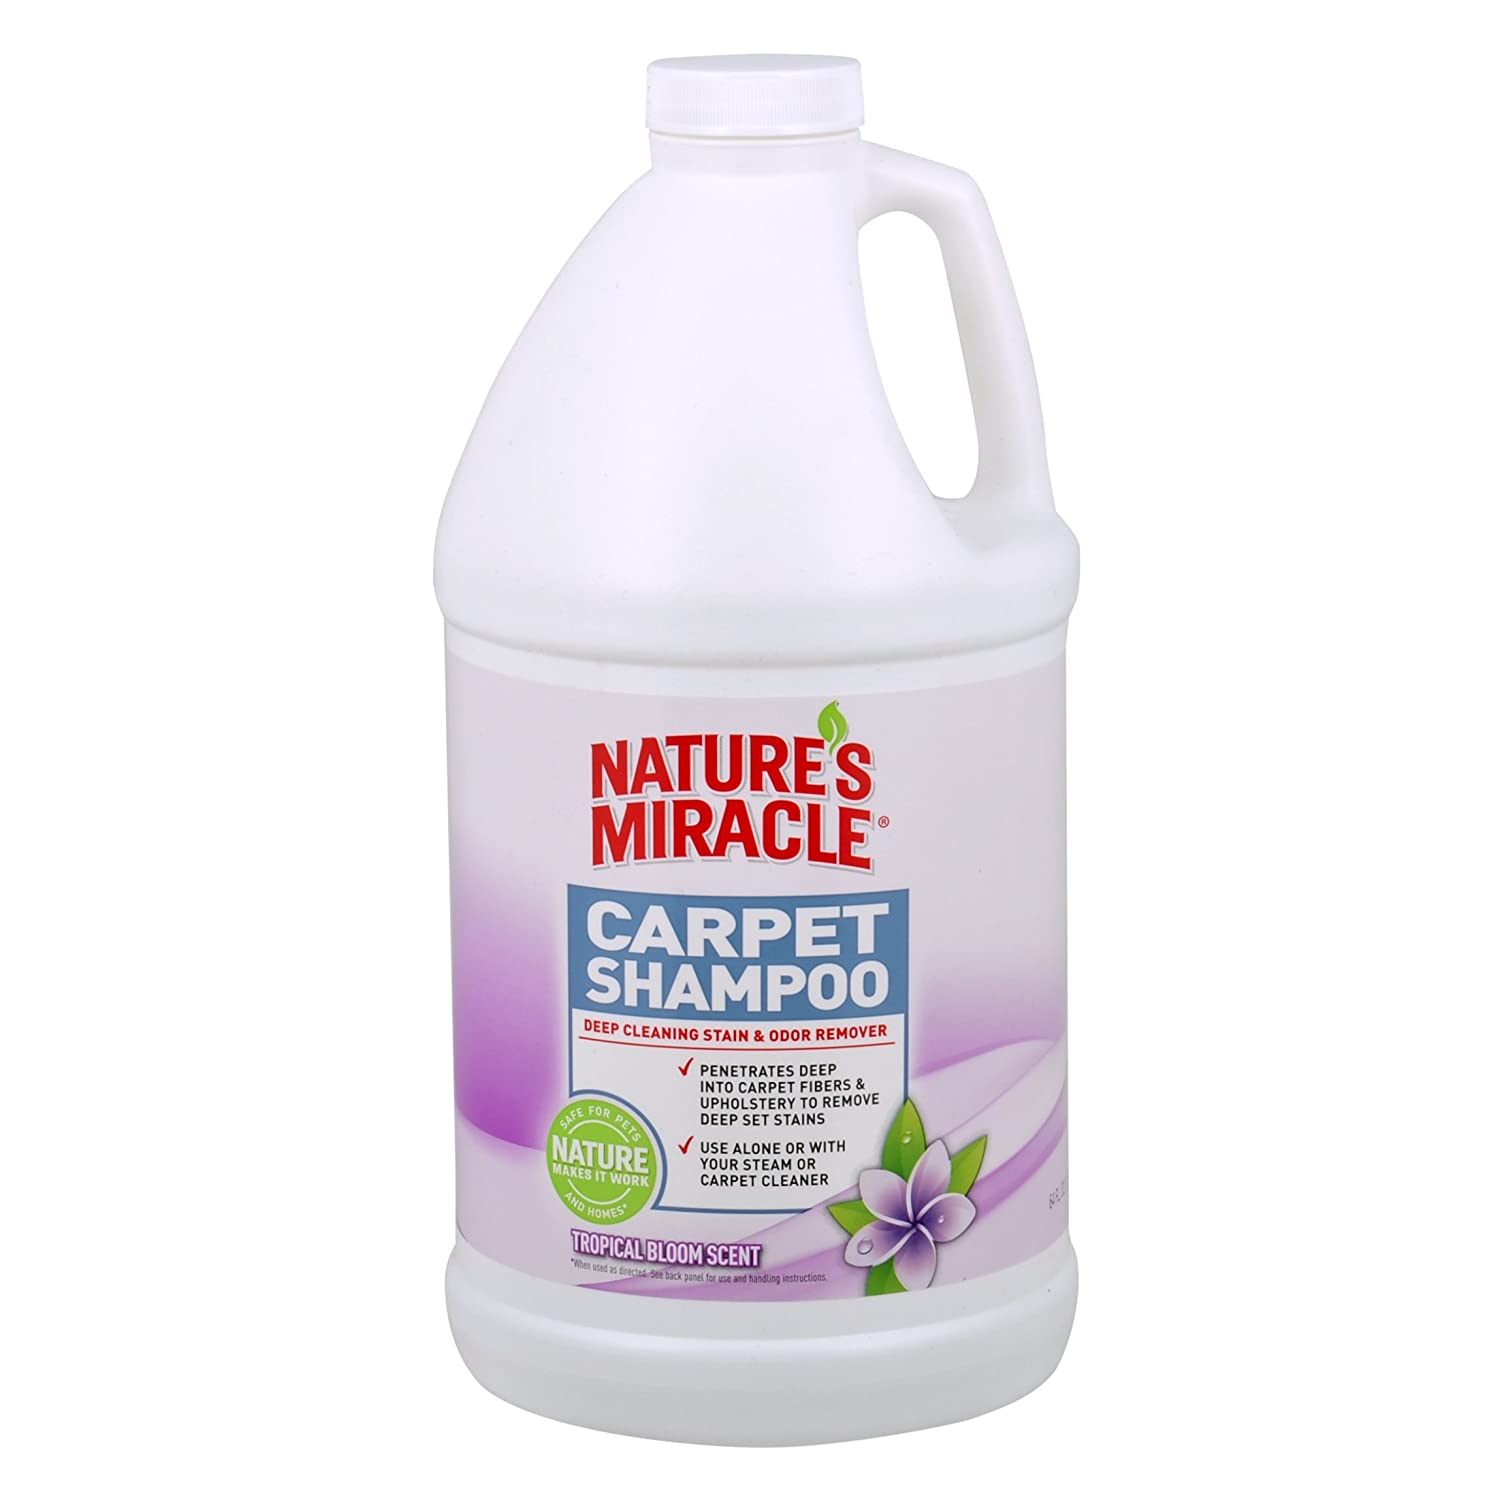 Nature's Miracle Tropical Bloom Scent Deep Cleaning Carpet Shampoo, Tropical Bloom.5 Gallon